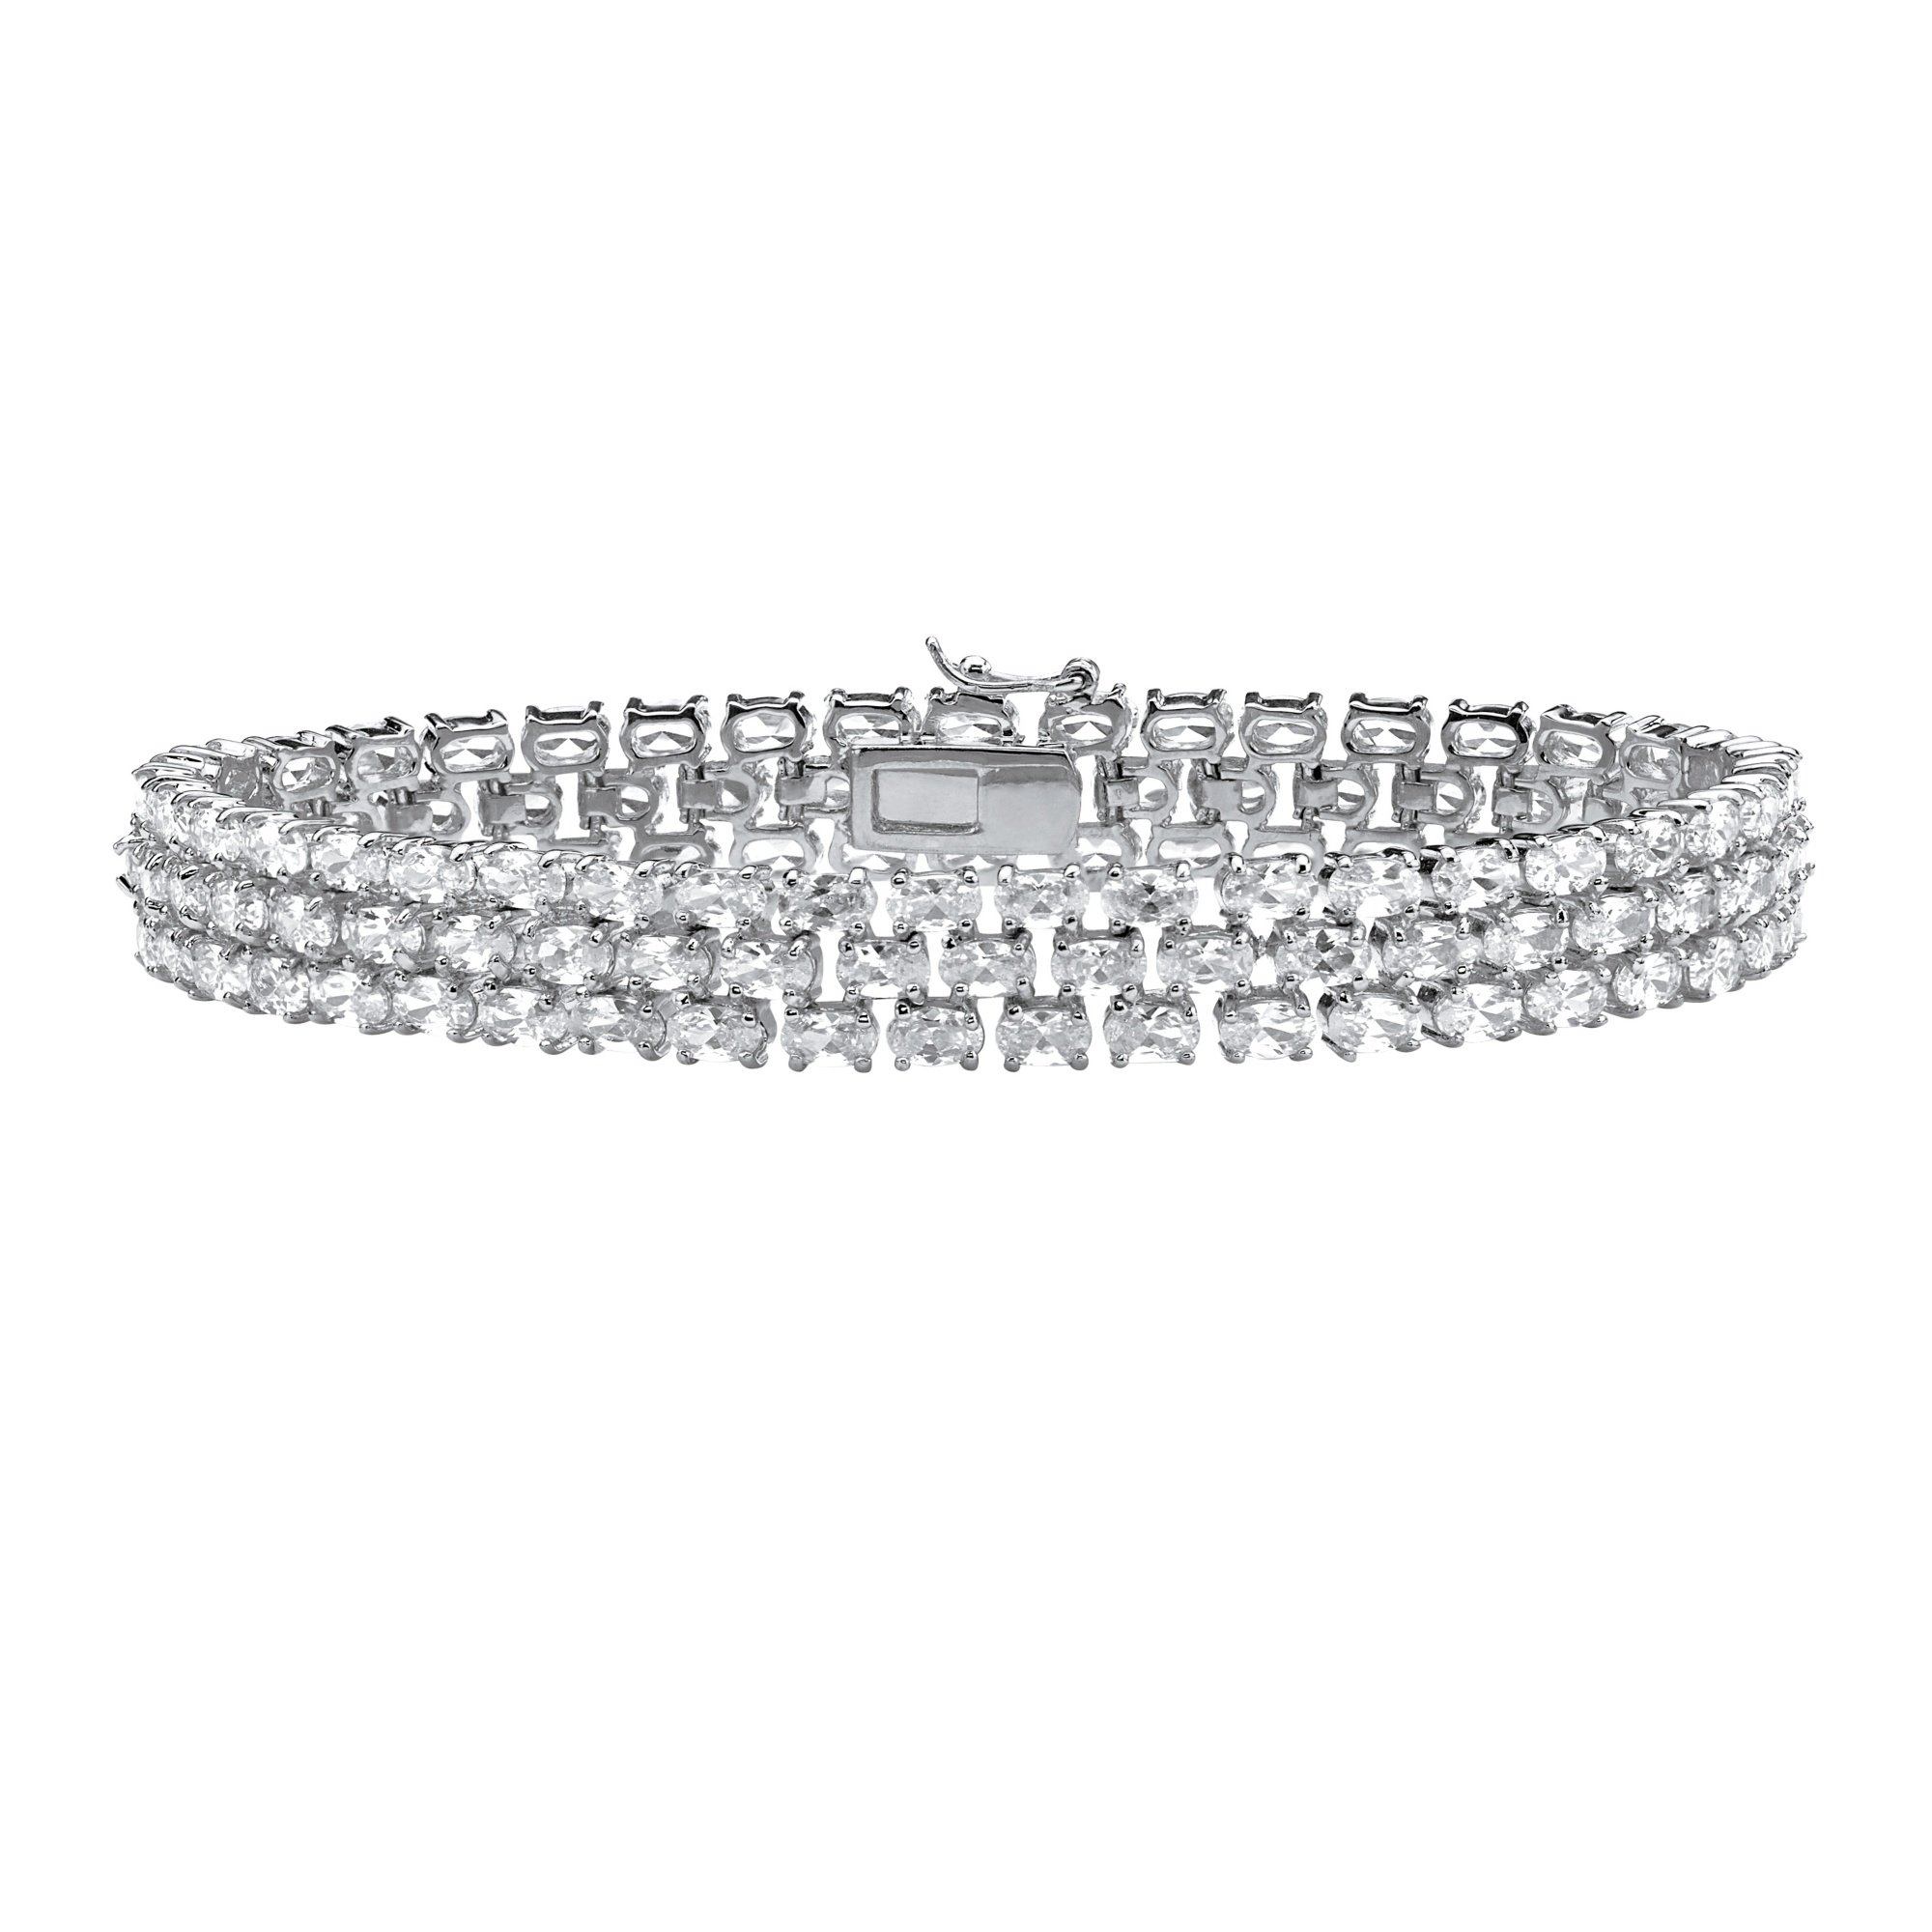 Oval White Cubic Zirconia Rhodium-Plated .925 Sterling Silver Tennis Bracelet 8.5''